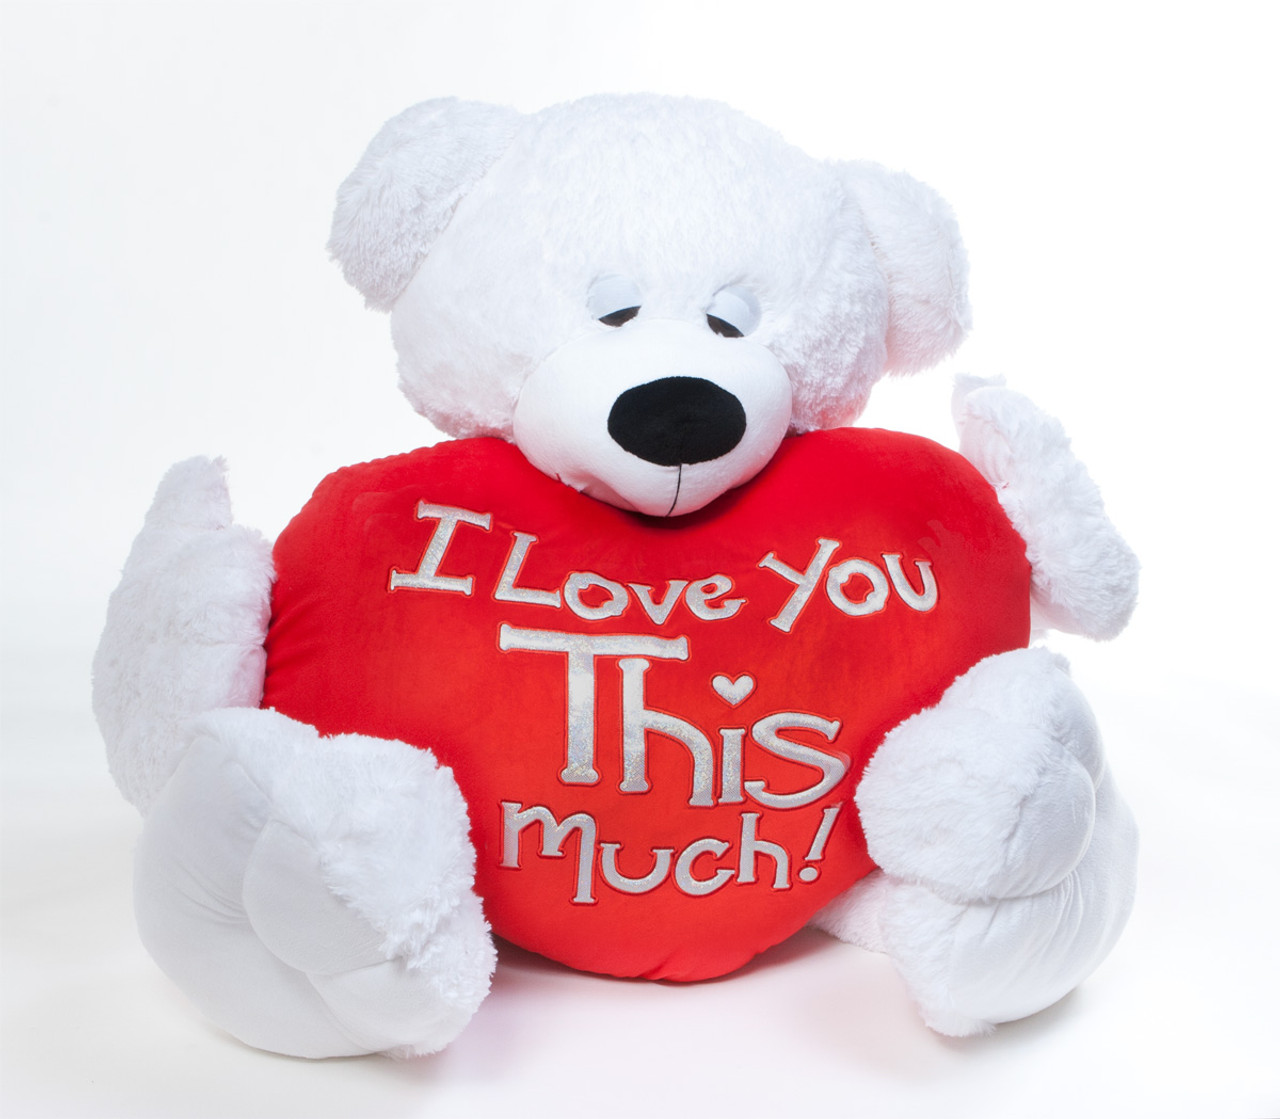 I MISS You THIS Much/I LOVE You This Much  4 1/2 Ft Paw Mittens   Unique Valentineu0027s  Day Teddy Bear With Heart   Big Teddy Bear